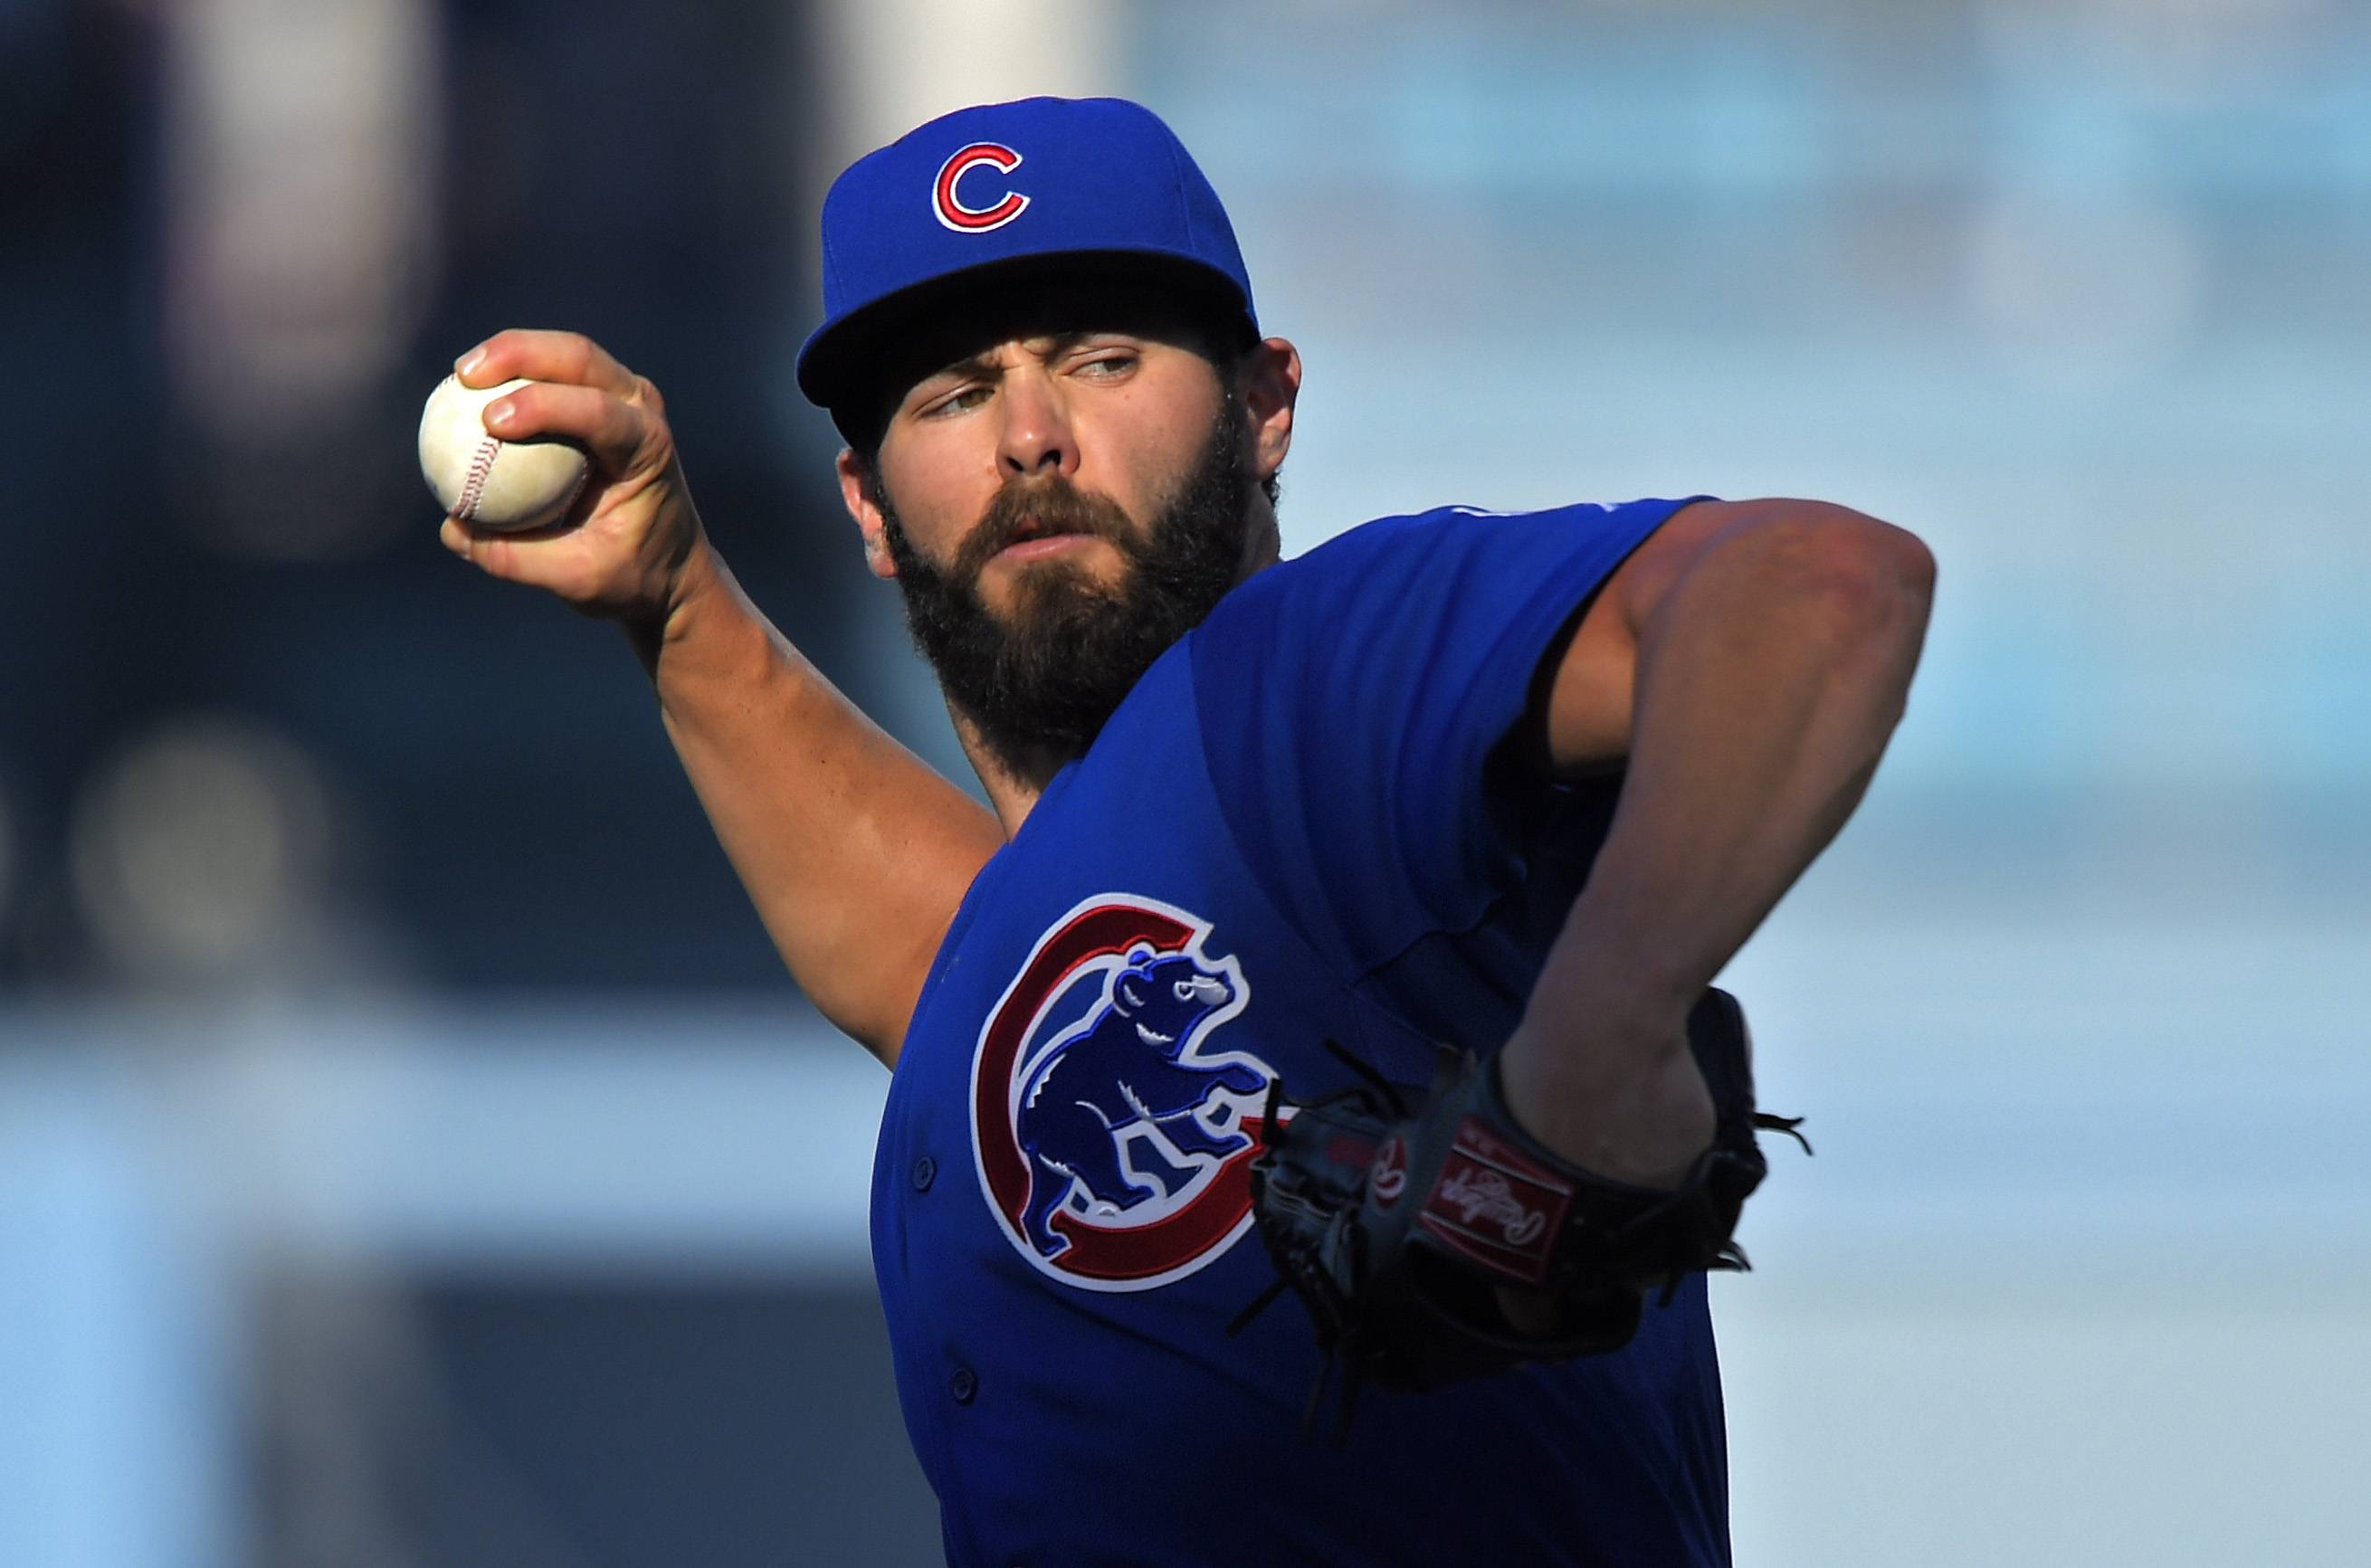 Chicago Cubs starting pitcher Jake Arrieta throws to the plate during the first inning of a baseball game against the Los Angeles Dodgers, Sunday, Aug. 30, 2015, in Los Angeles.